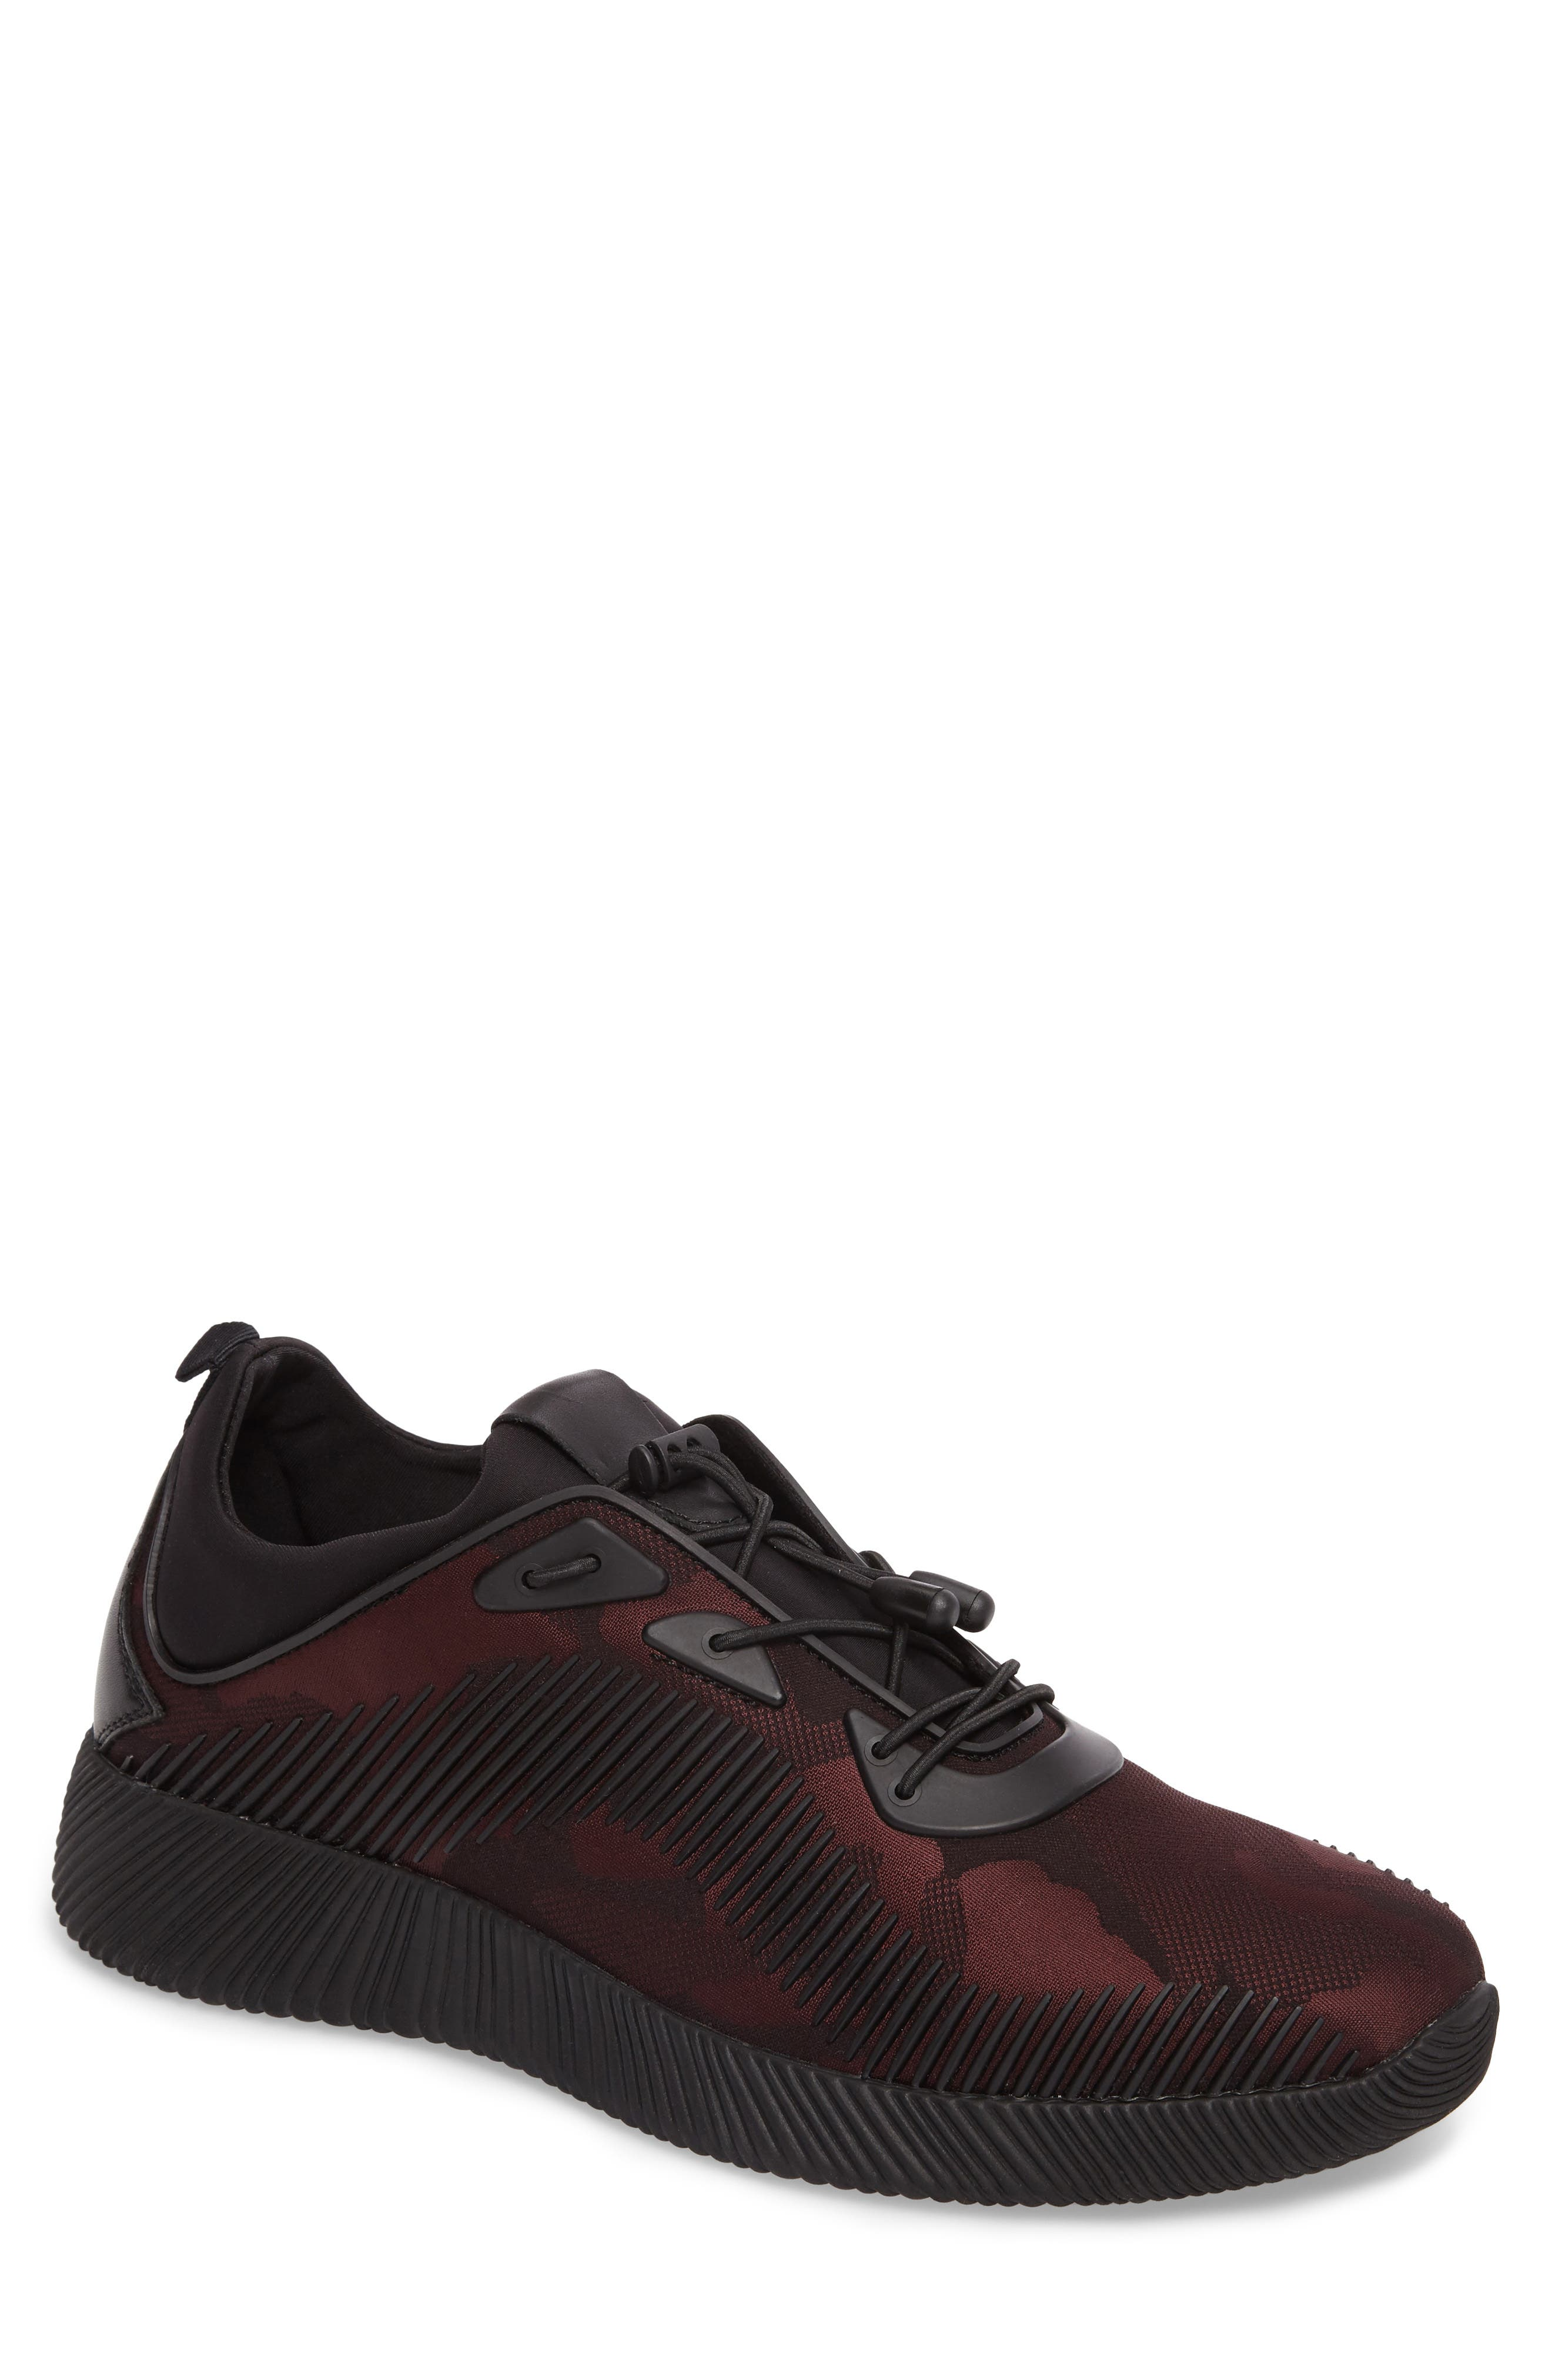 Kenneth Cole New York Sinch Sneaker (Men)